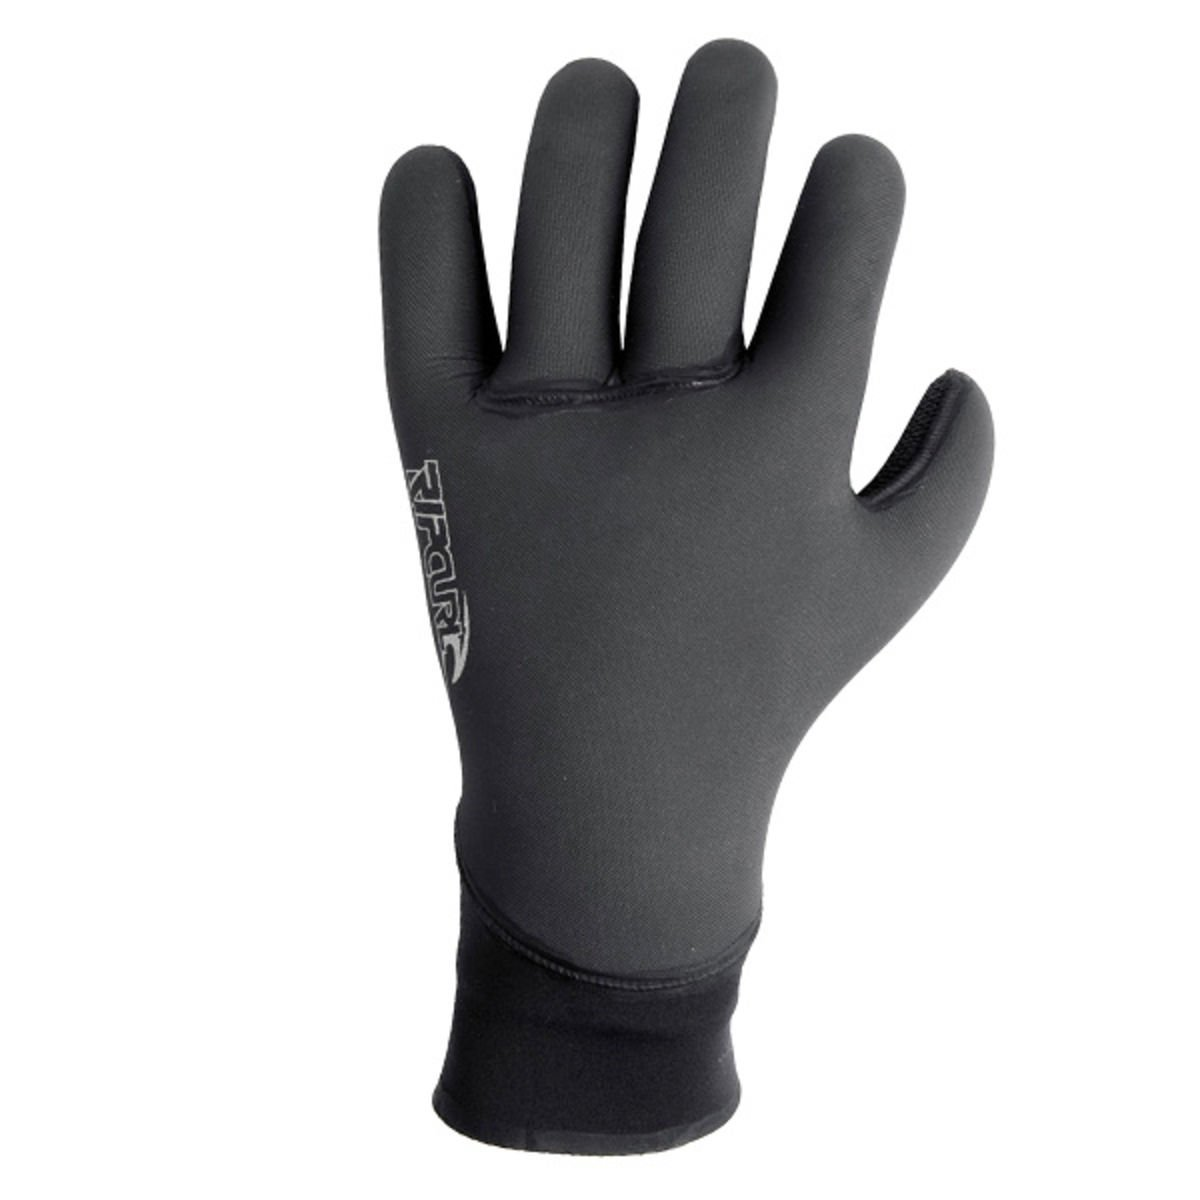 Rip Curl Flashbomb 3mm 5 Finger Glove